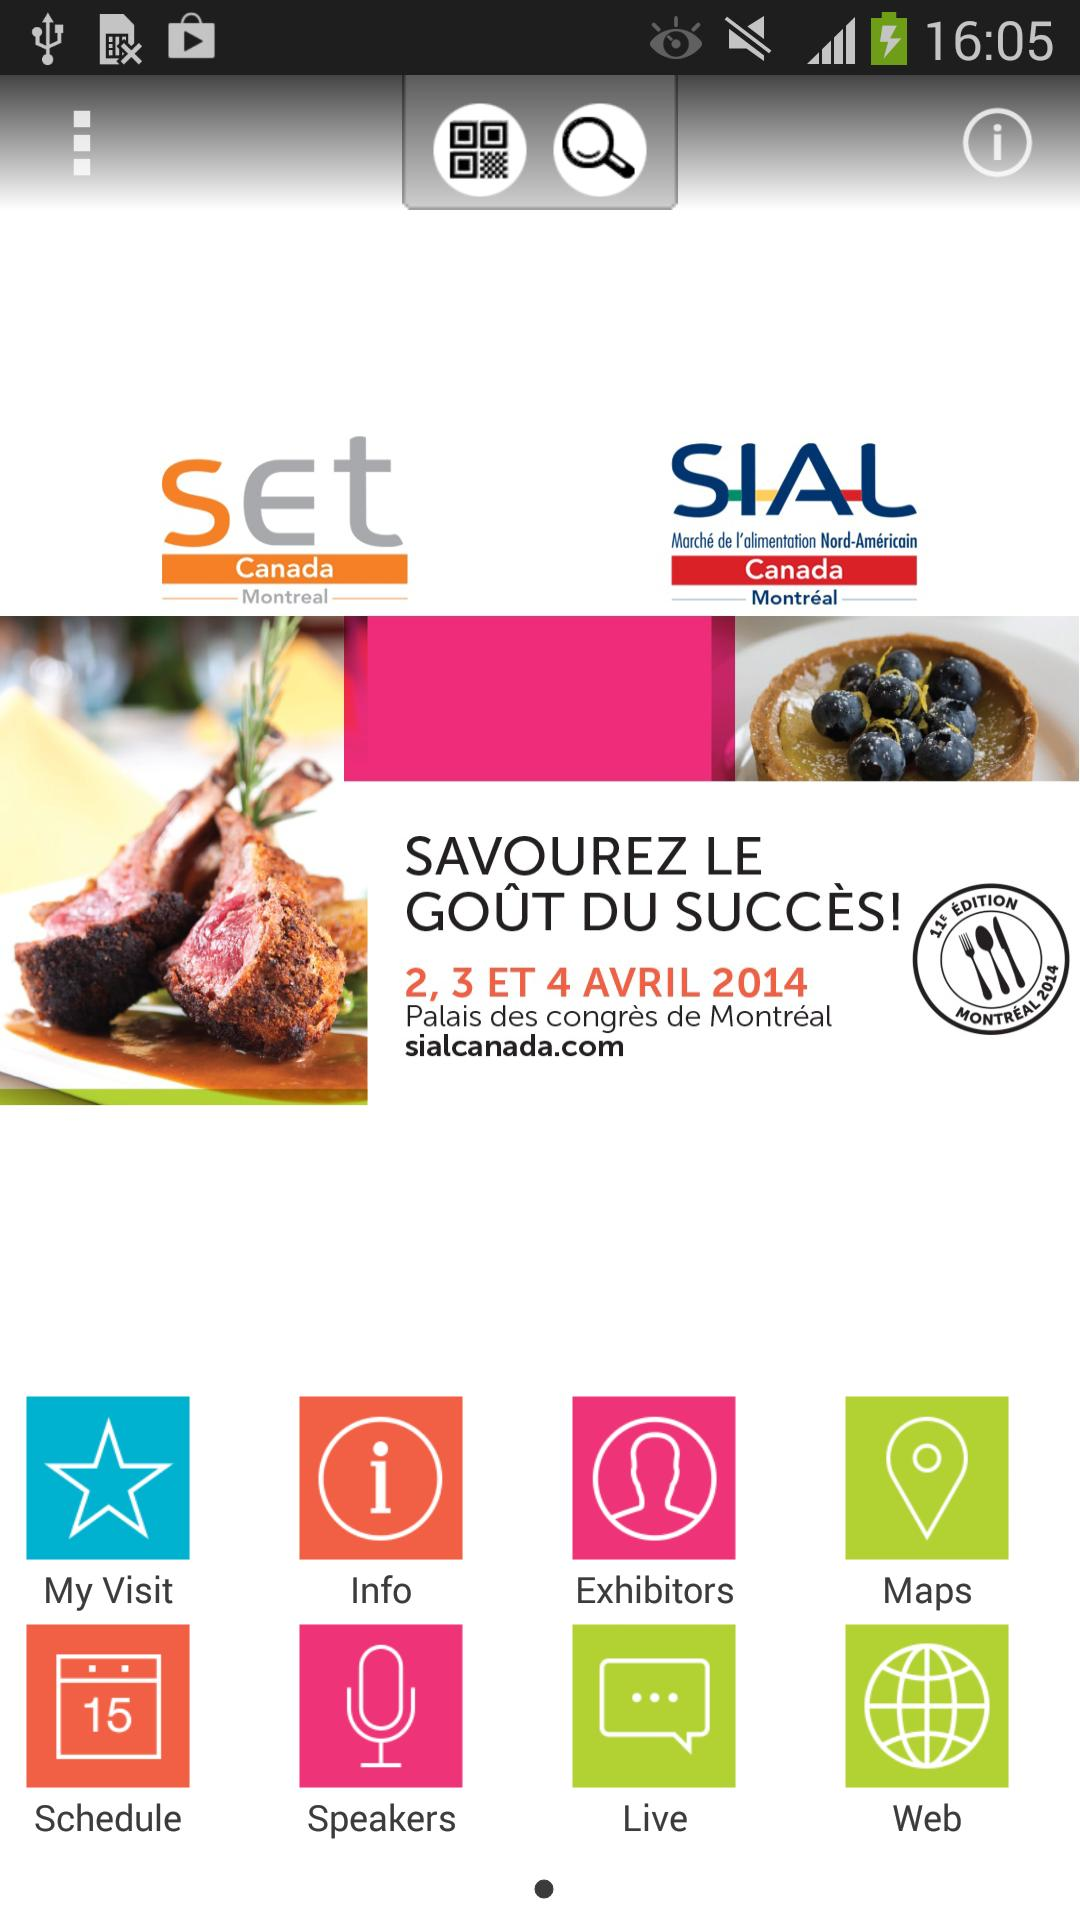 SIAL/SET Canada poster